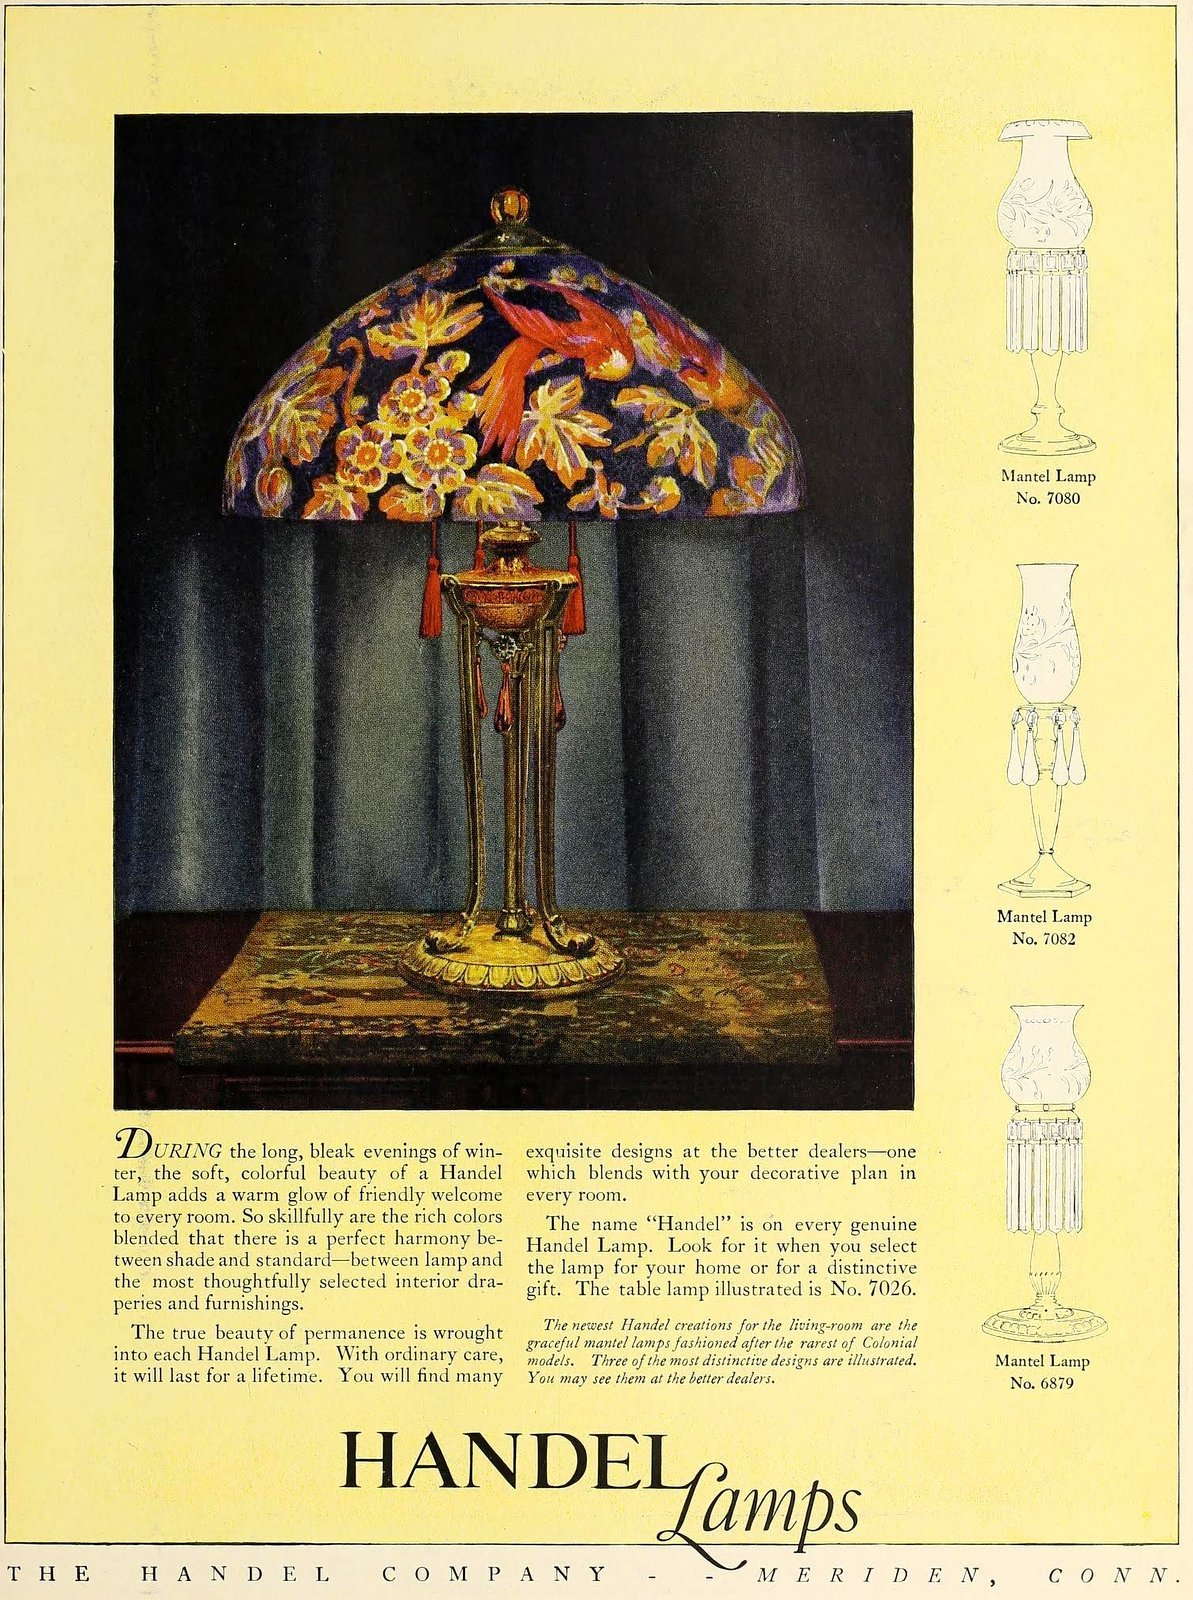 Antique glass shade table lamp from Handel (1923)